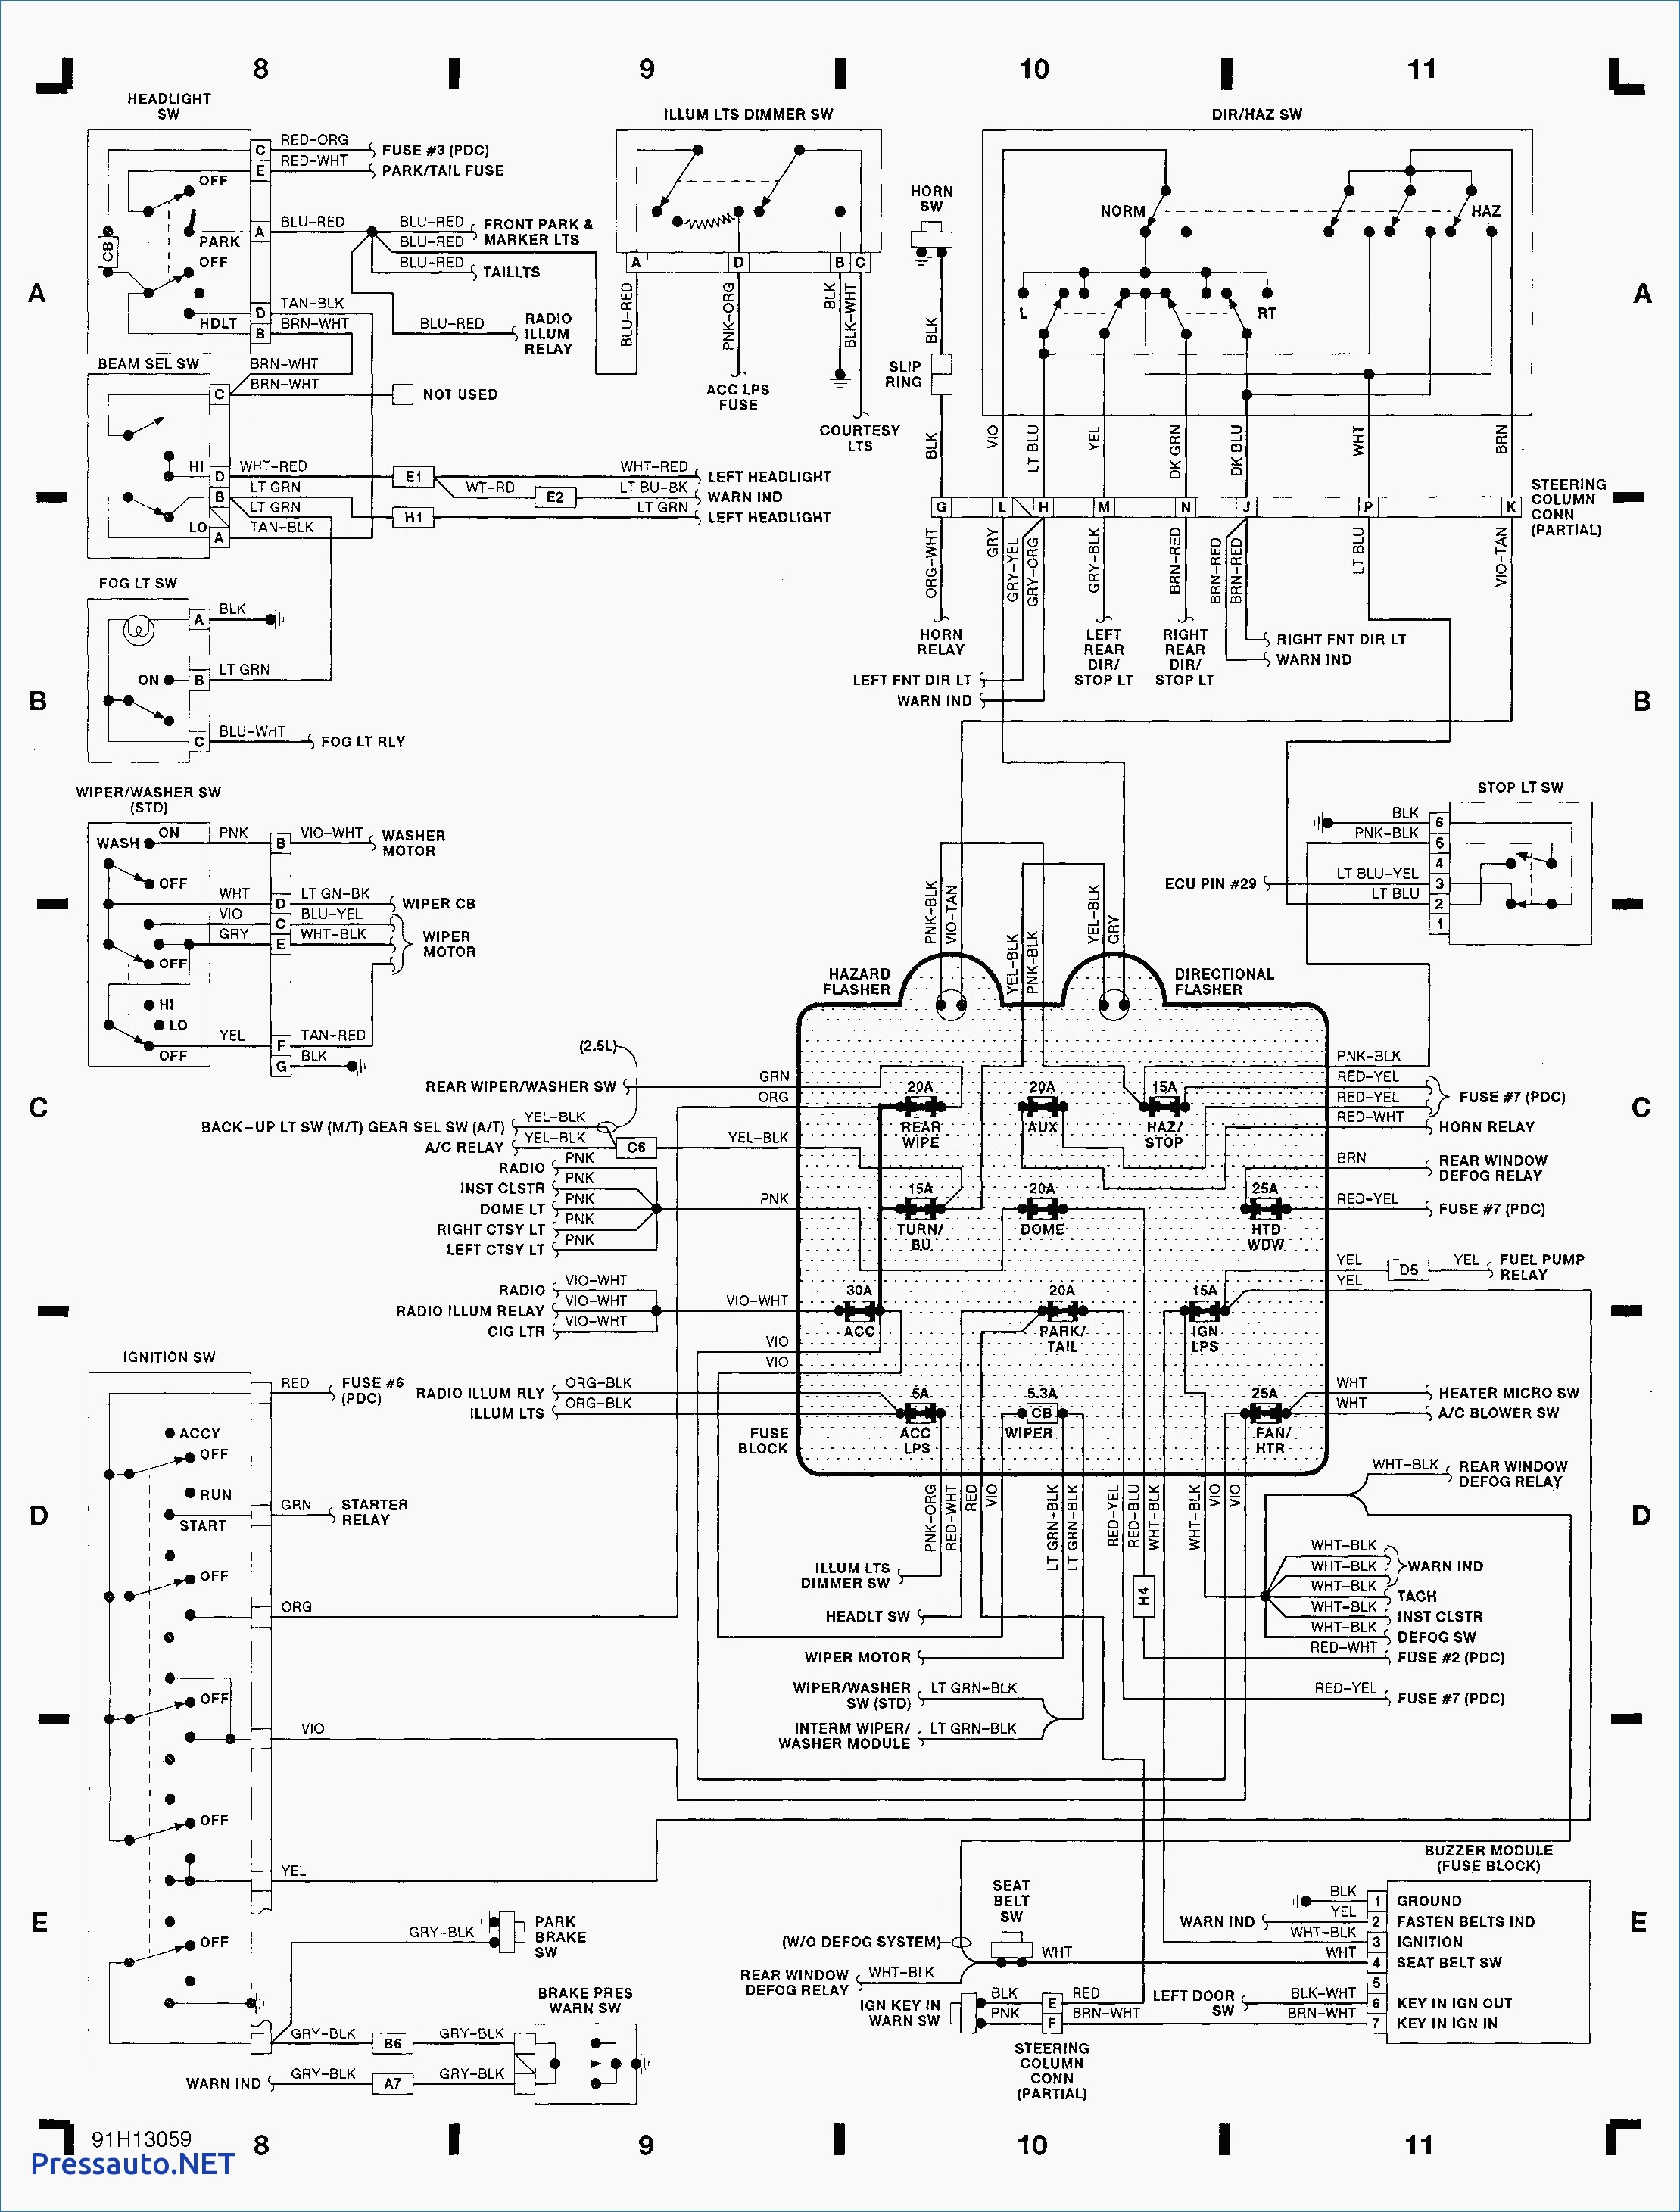 [SCHEMATICS_49CH]  2004 Jeep Wrangler Wiring - Wiring Diagrams | 2004 Jeep Wrangler Wiring Schematic |  | galleriadelregalo.it